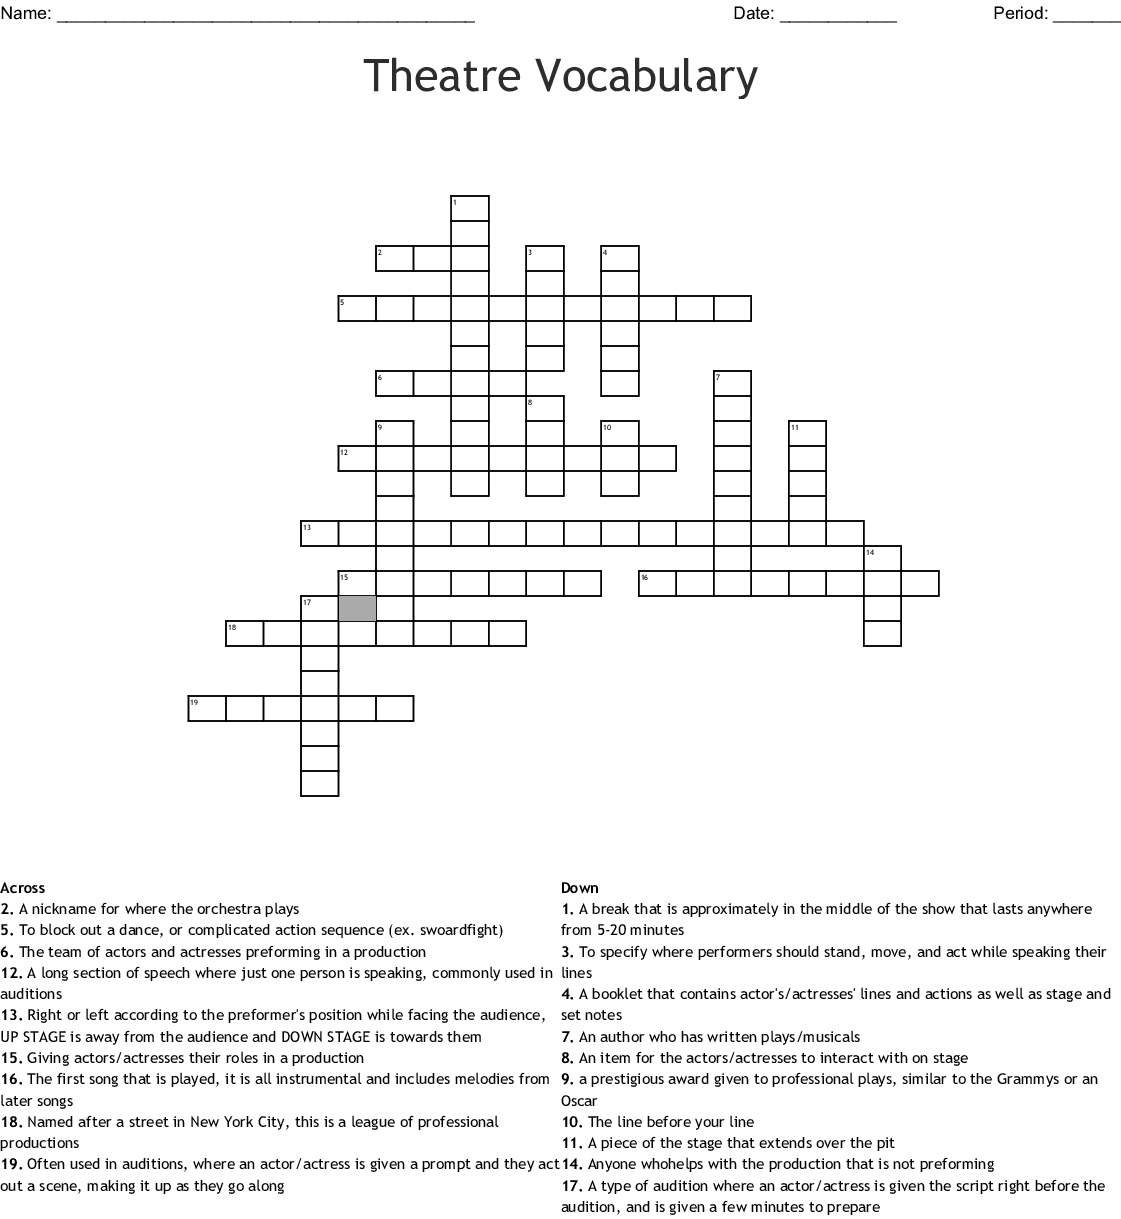 Technical Theater Vocabulary Crossword Puzzle Answer